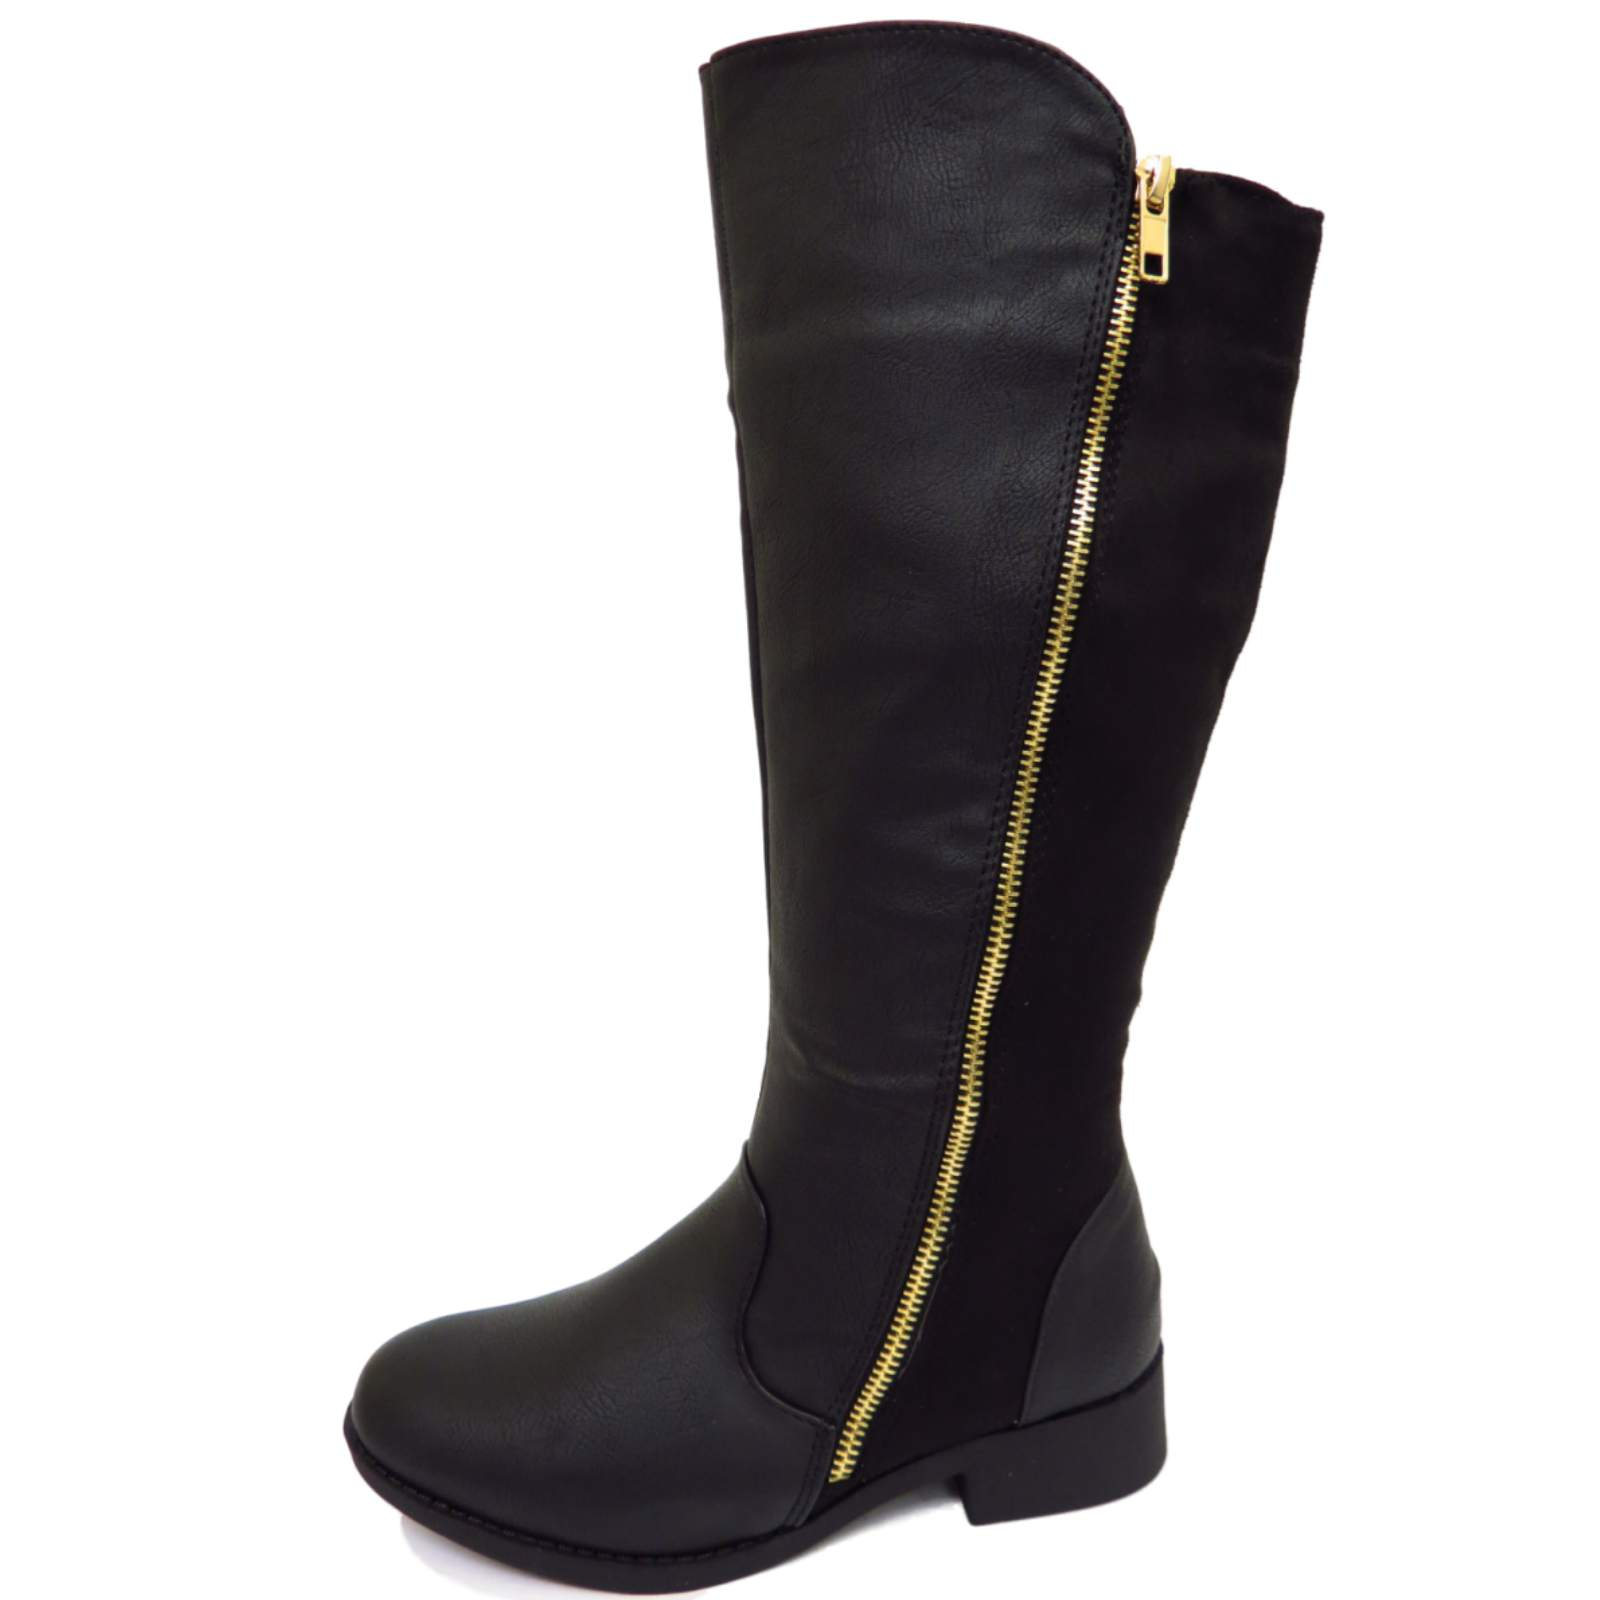 ladies flat black kneehigh riding zipup calf tall winter